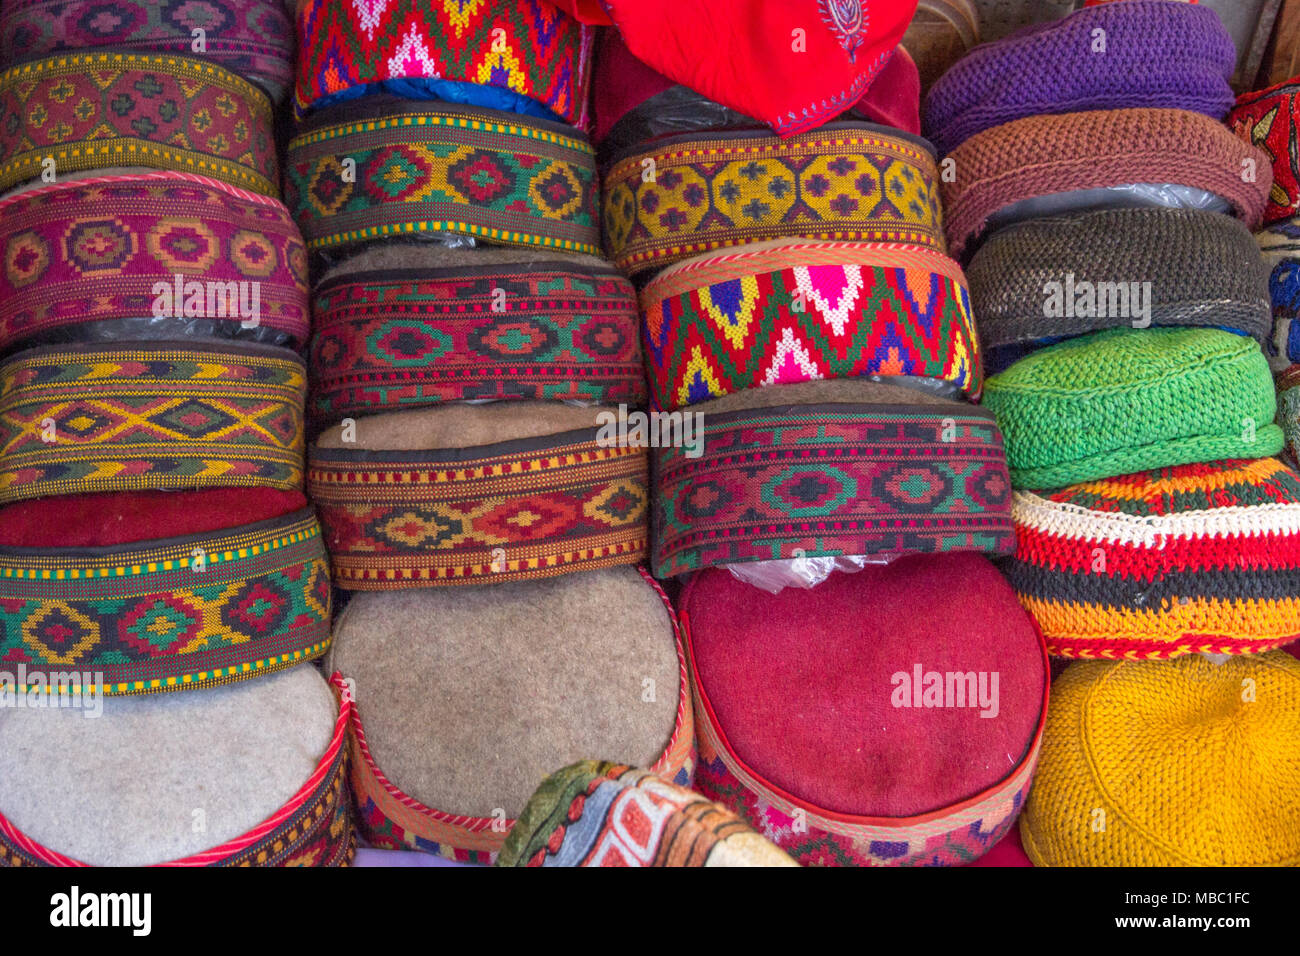 Unique, intricate, woven designs on an array of colorful, flat-topped caps for sale in a Manali market. - Stock Image